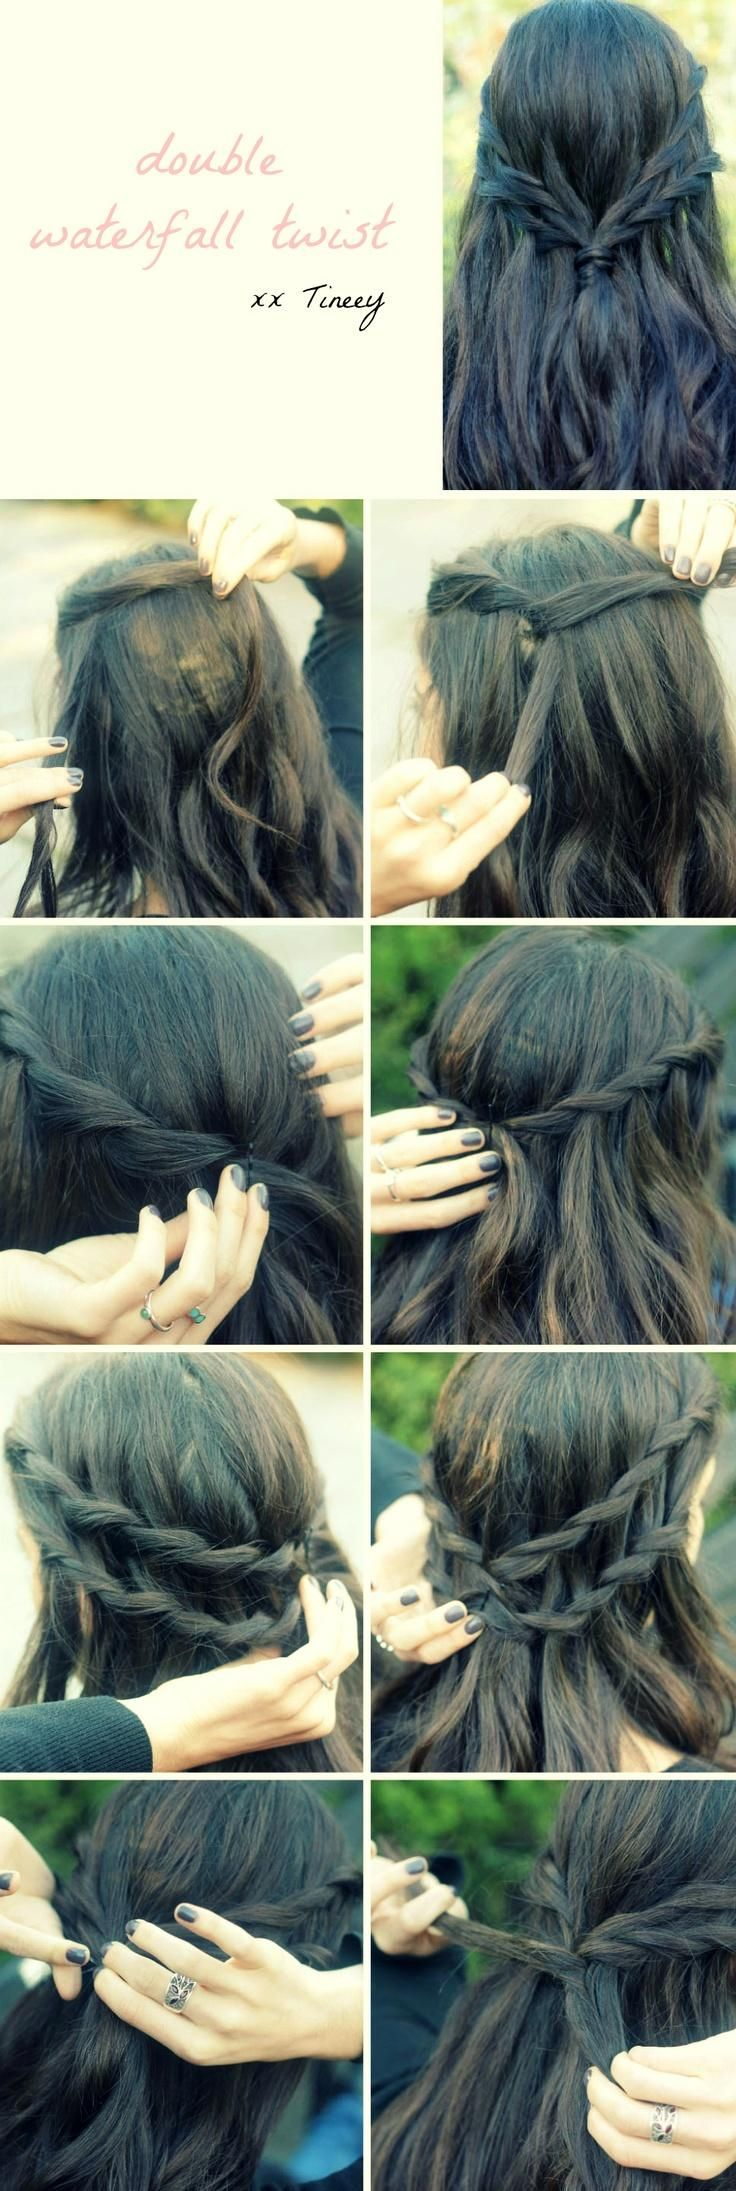 best images about hair on pinterest long hair waterfalls and